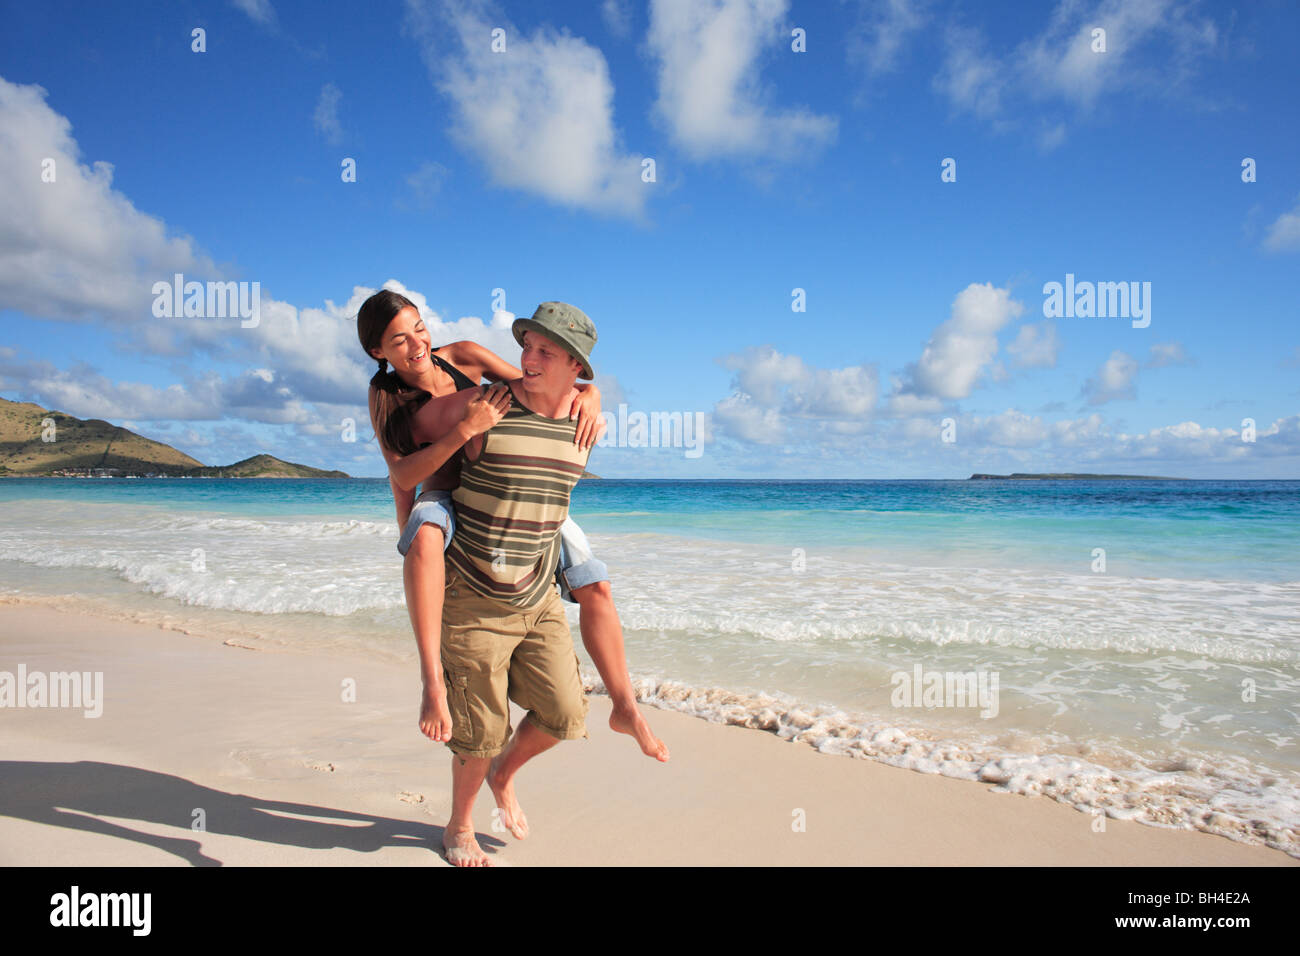 Young couple playing piggyback on a deserted tropical beach, laughing - Stock Image